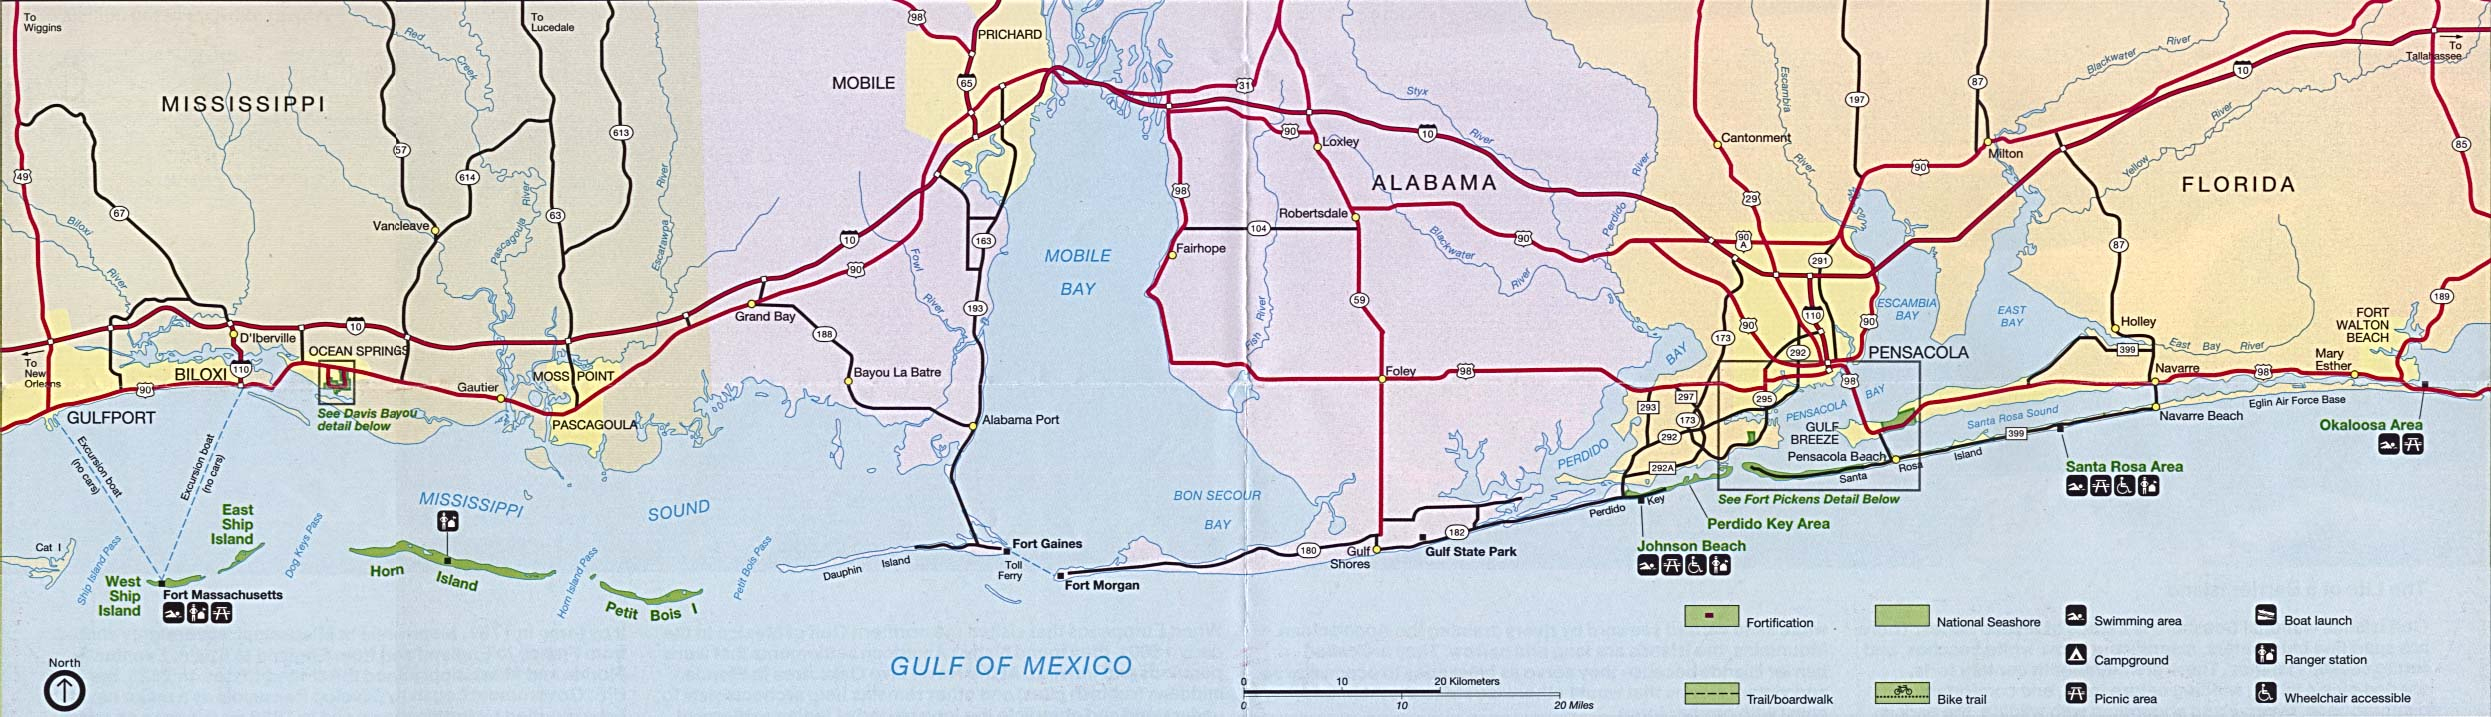 Florida Maps - Perry-Castañeda Map Collection - Ut Library Online - Florida Gulf Islands Map